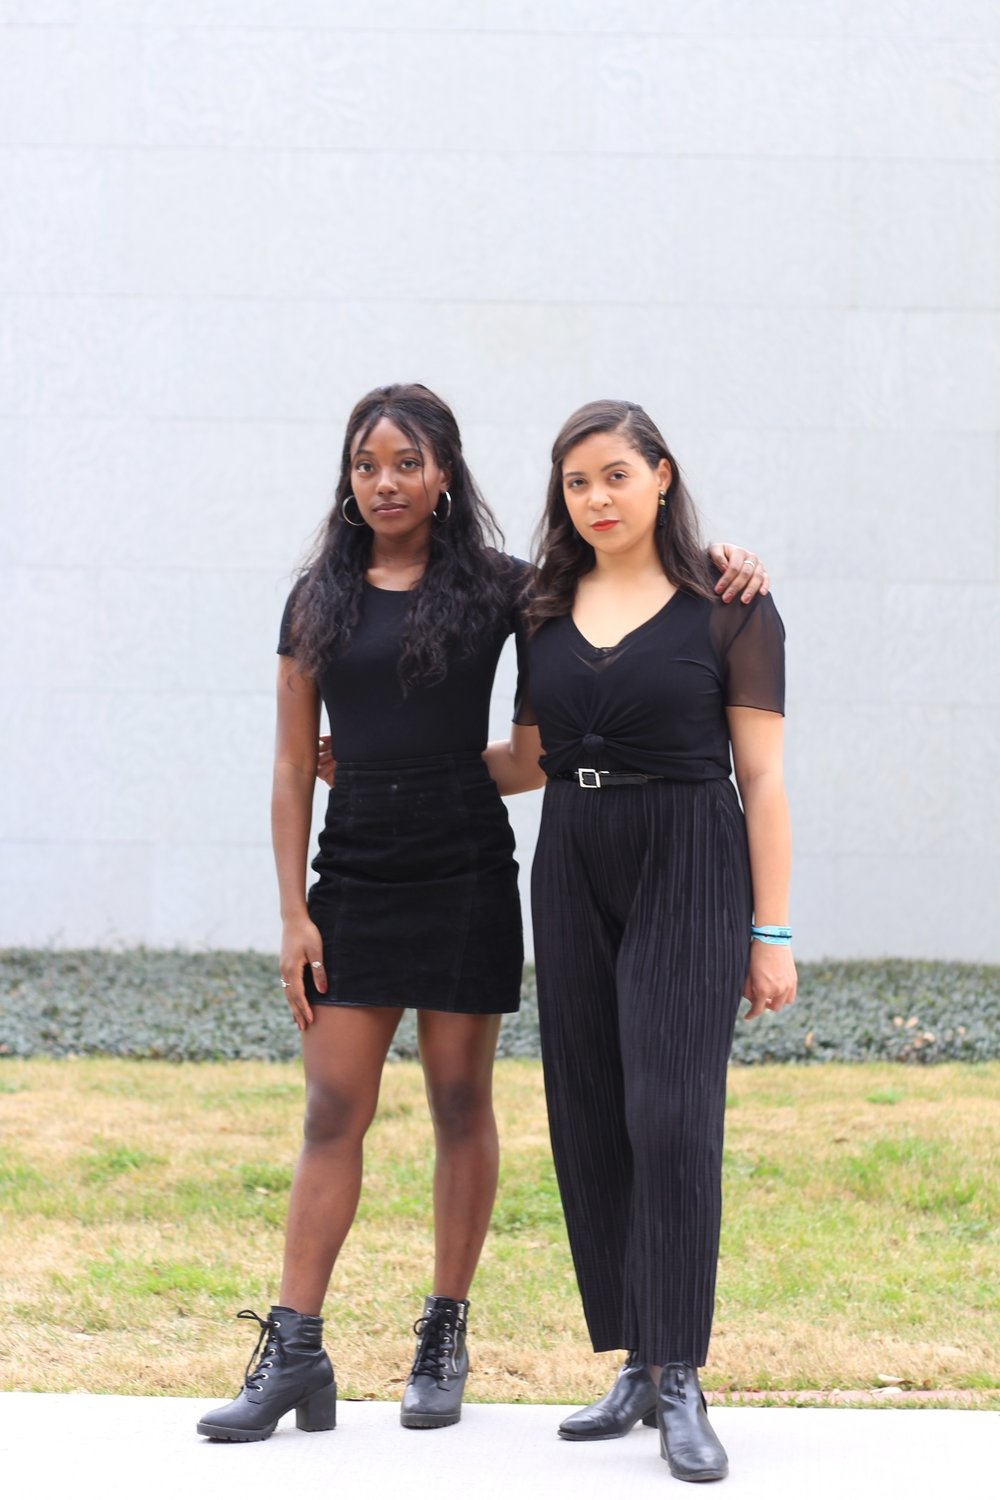 Jordan Auzenne and Eboni Ellinger, women producer and director duo, redefine the standards of creating a film that fits within society's expectations. The two girls work attentively actively paying attention to detail and fill the movie with symbolism.